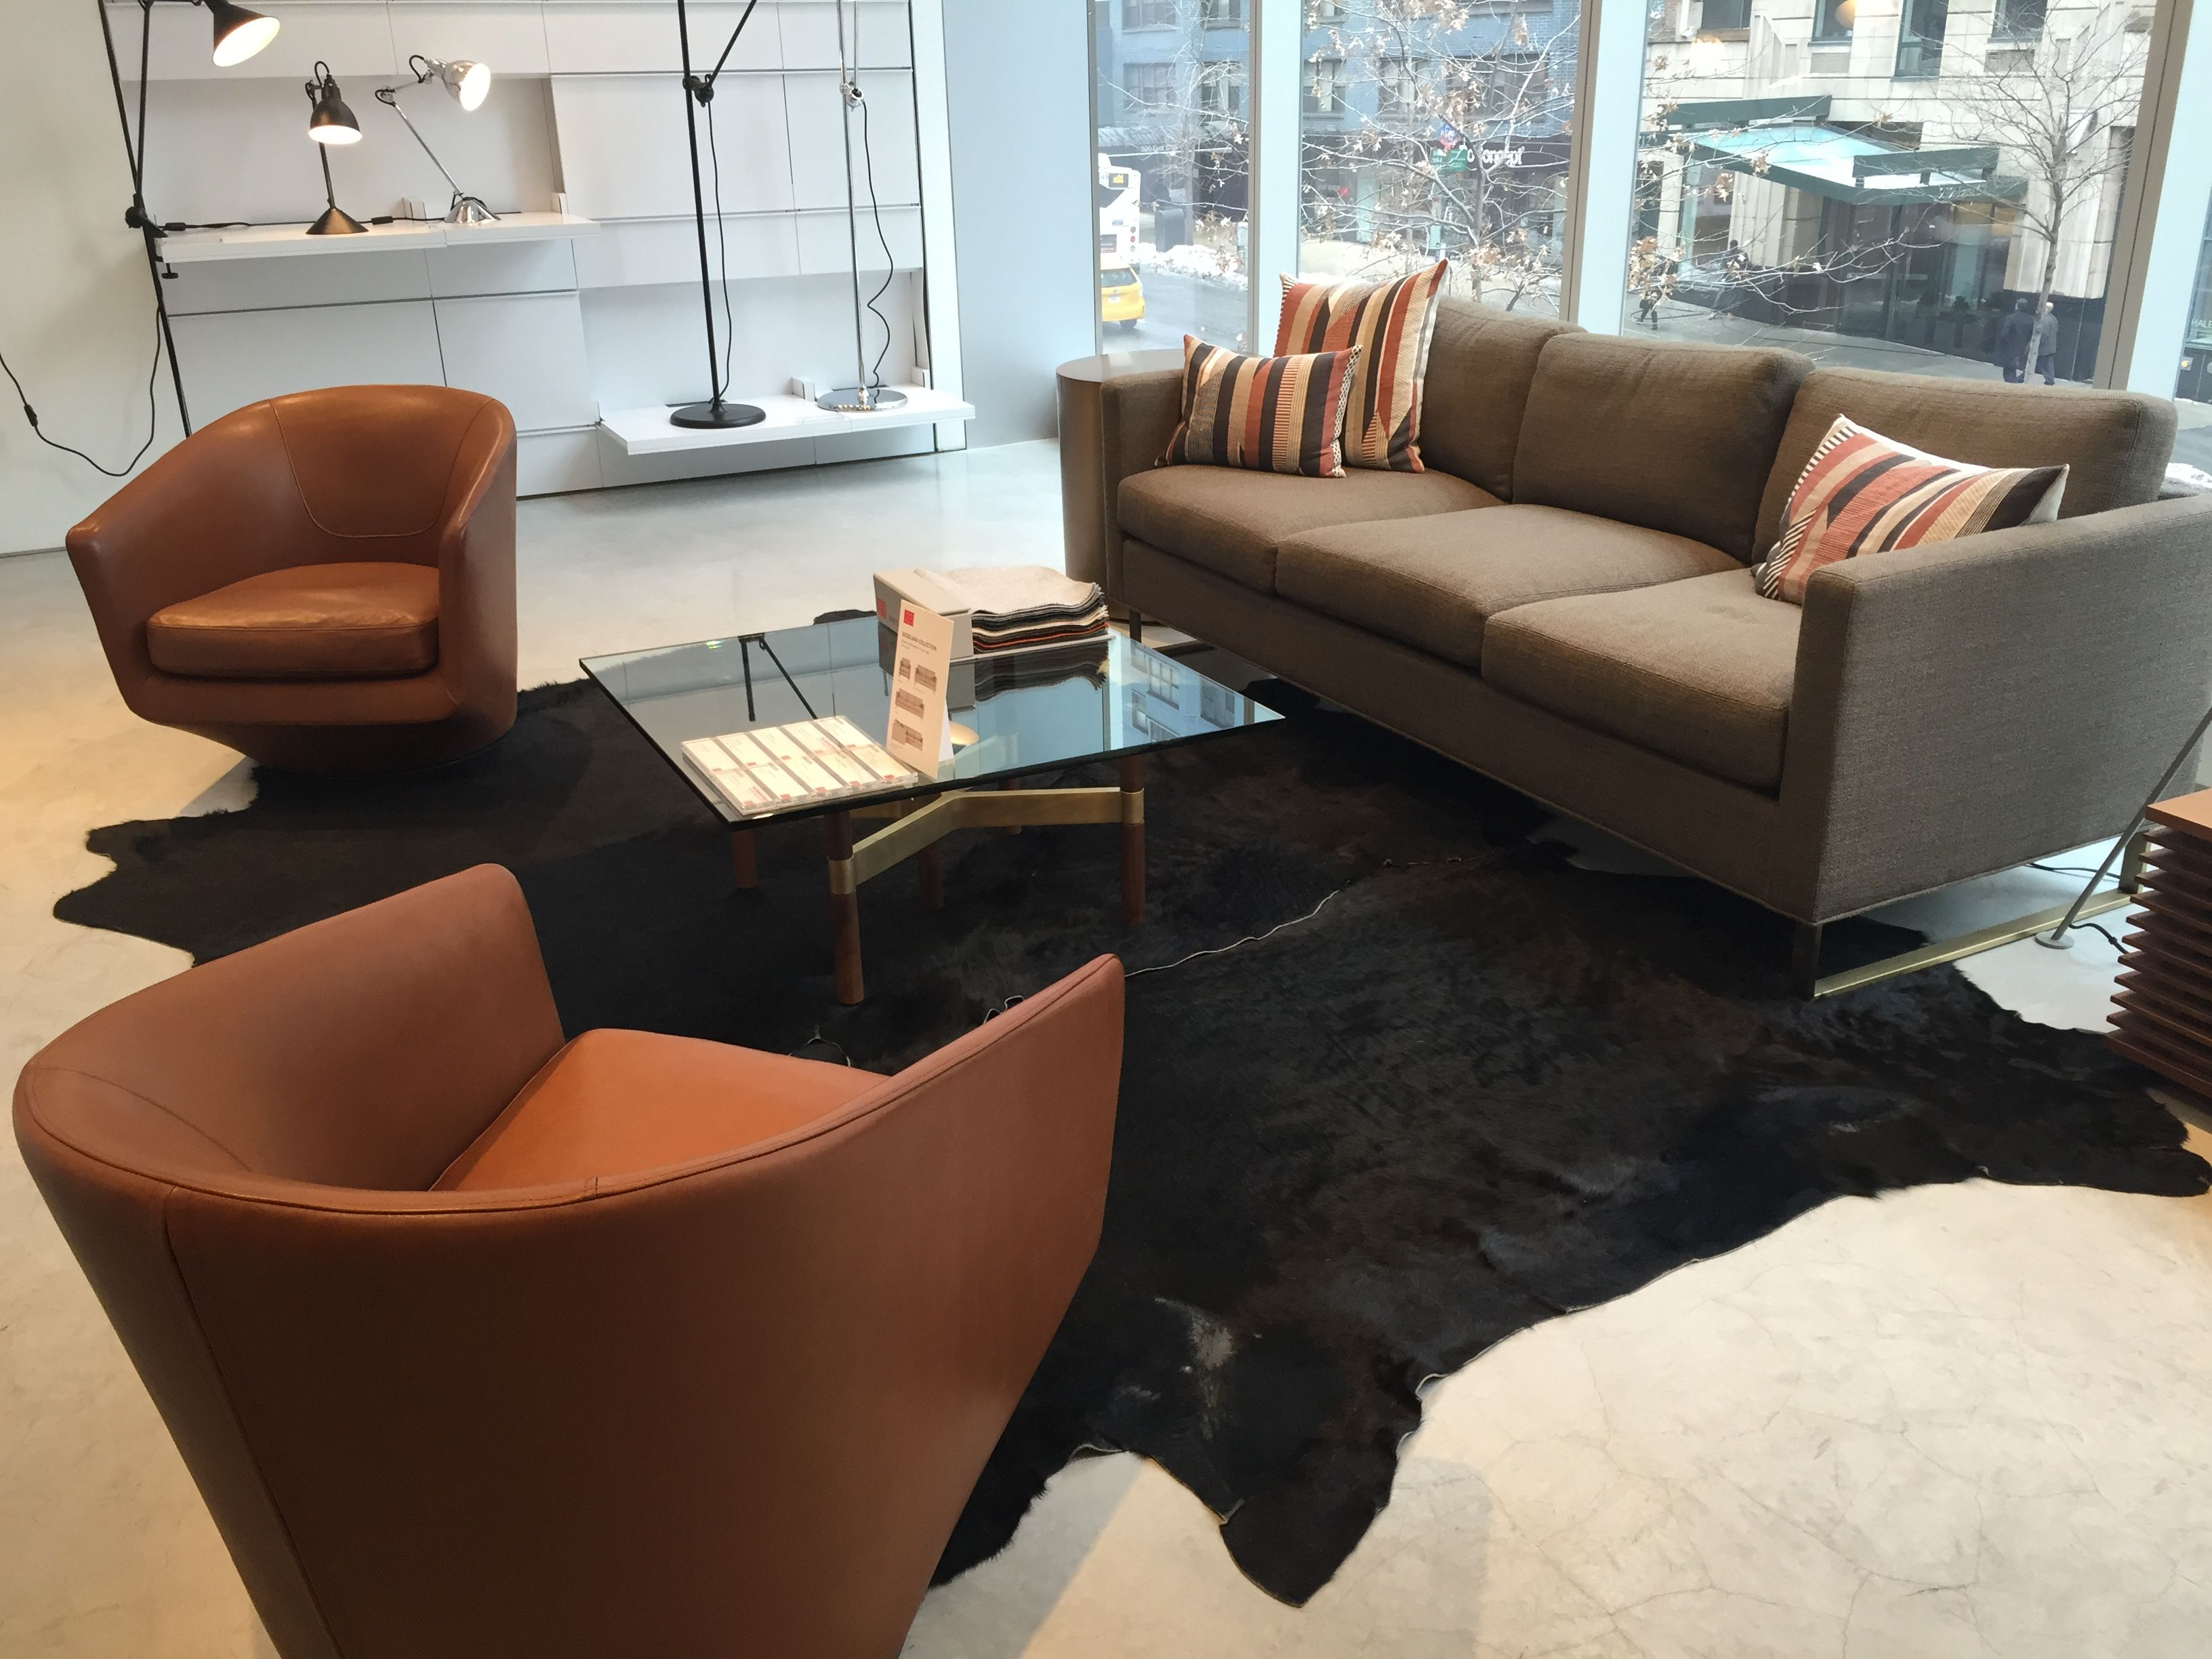 Design Within Reach Seating And Cowhide Area Rugs Office Space Design Space Design Design Within Reach